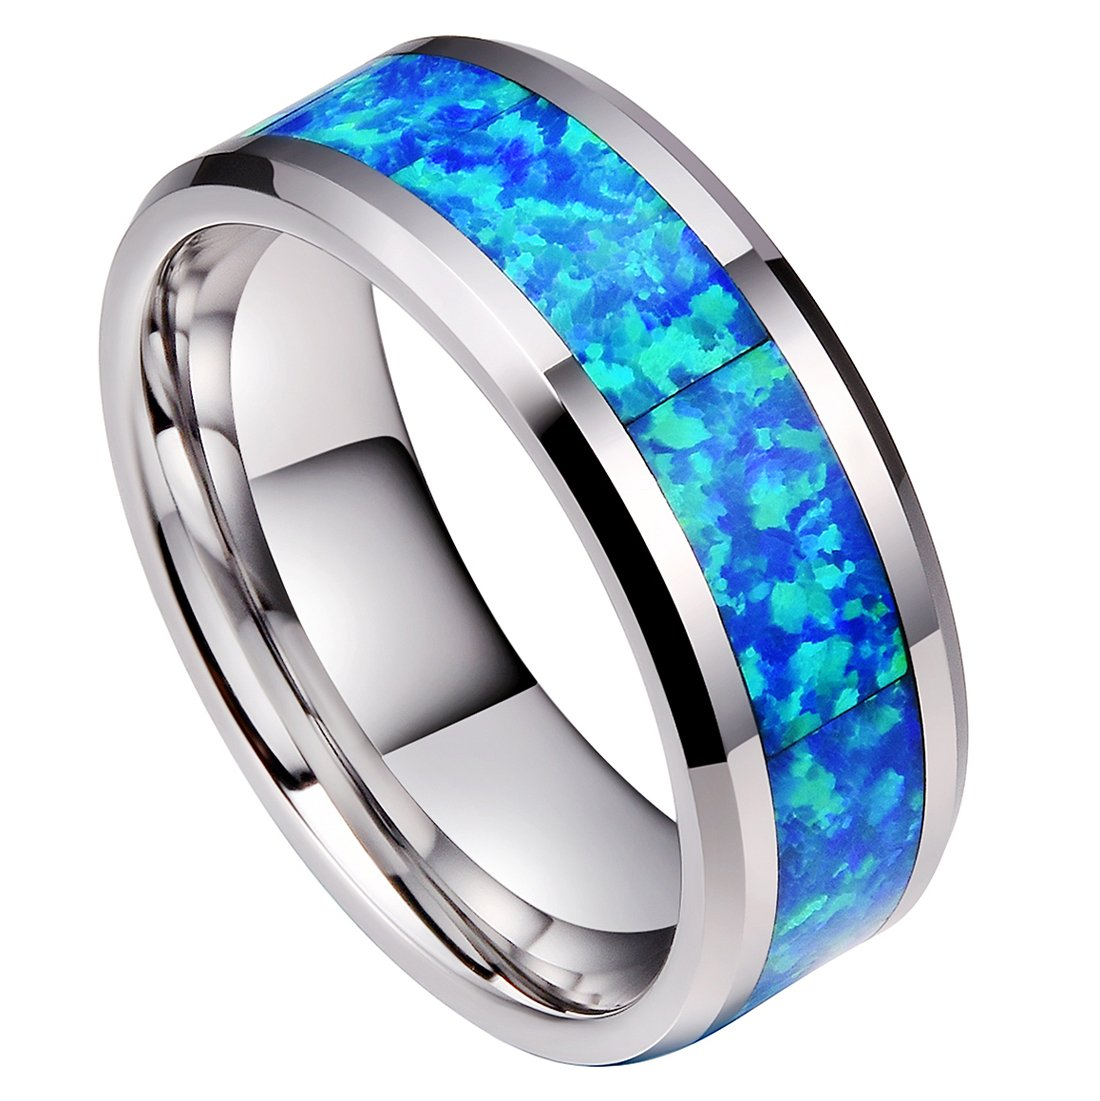 DOUX 8mm Mens White Tungsten Carbide Ring Blue Opal Inlay Wedding Band Comfort Fit High Polished(11)